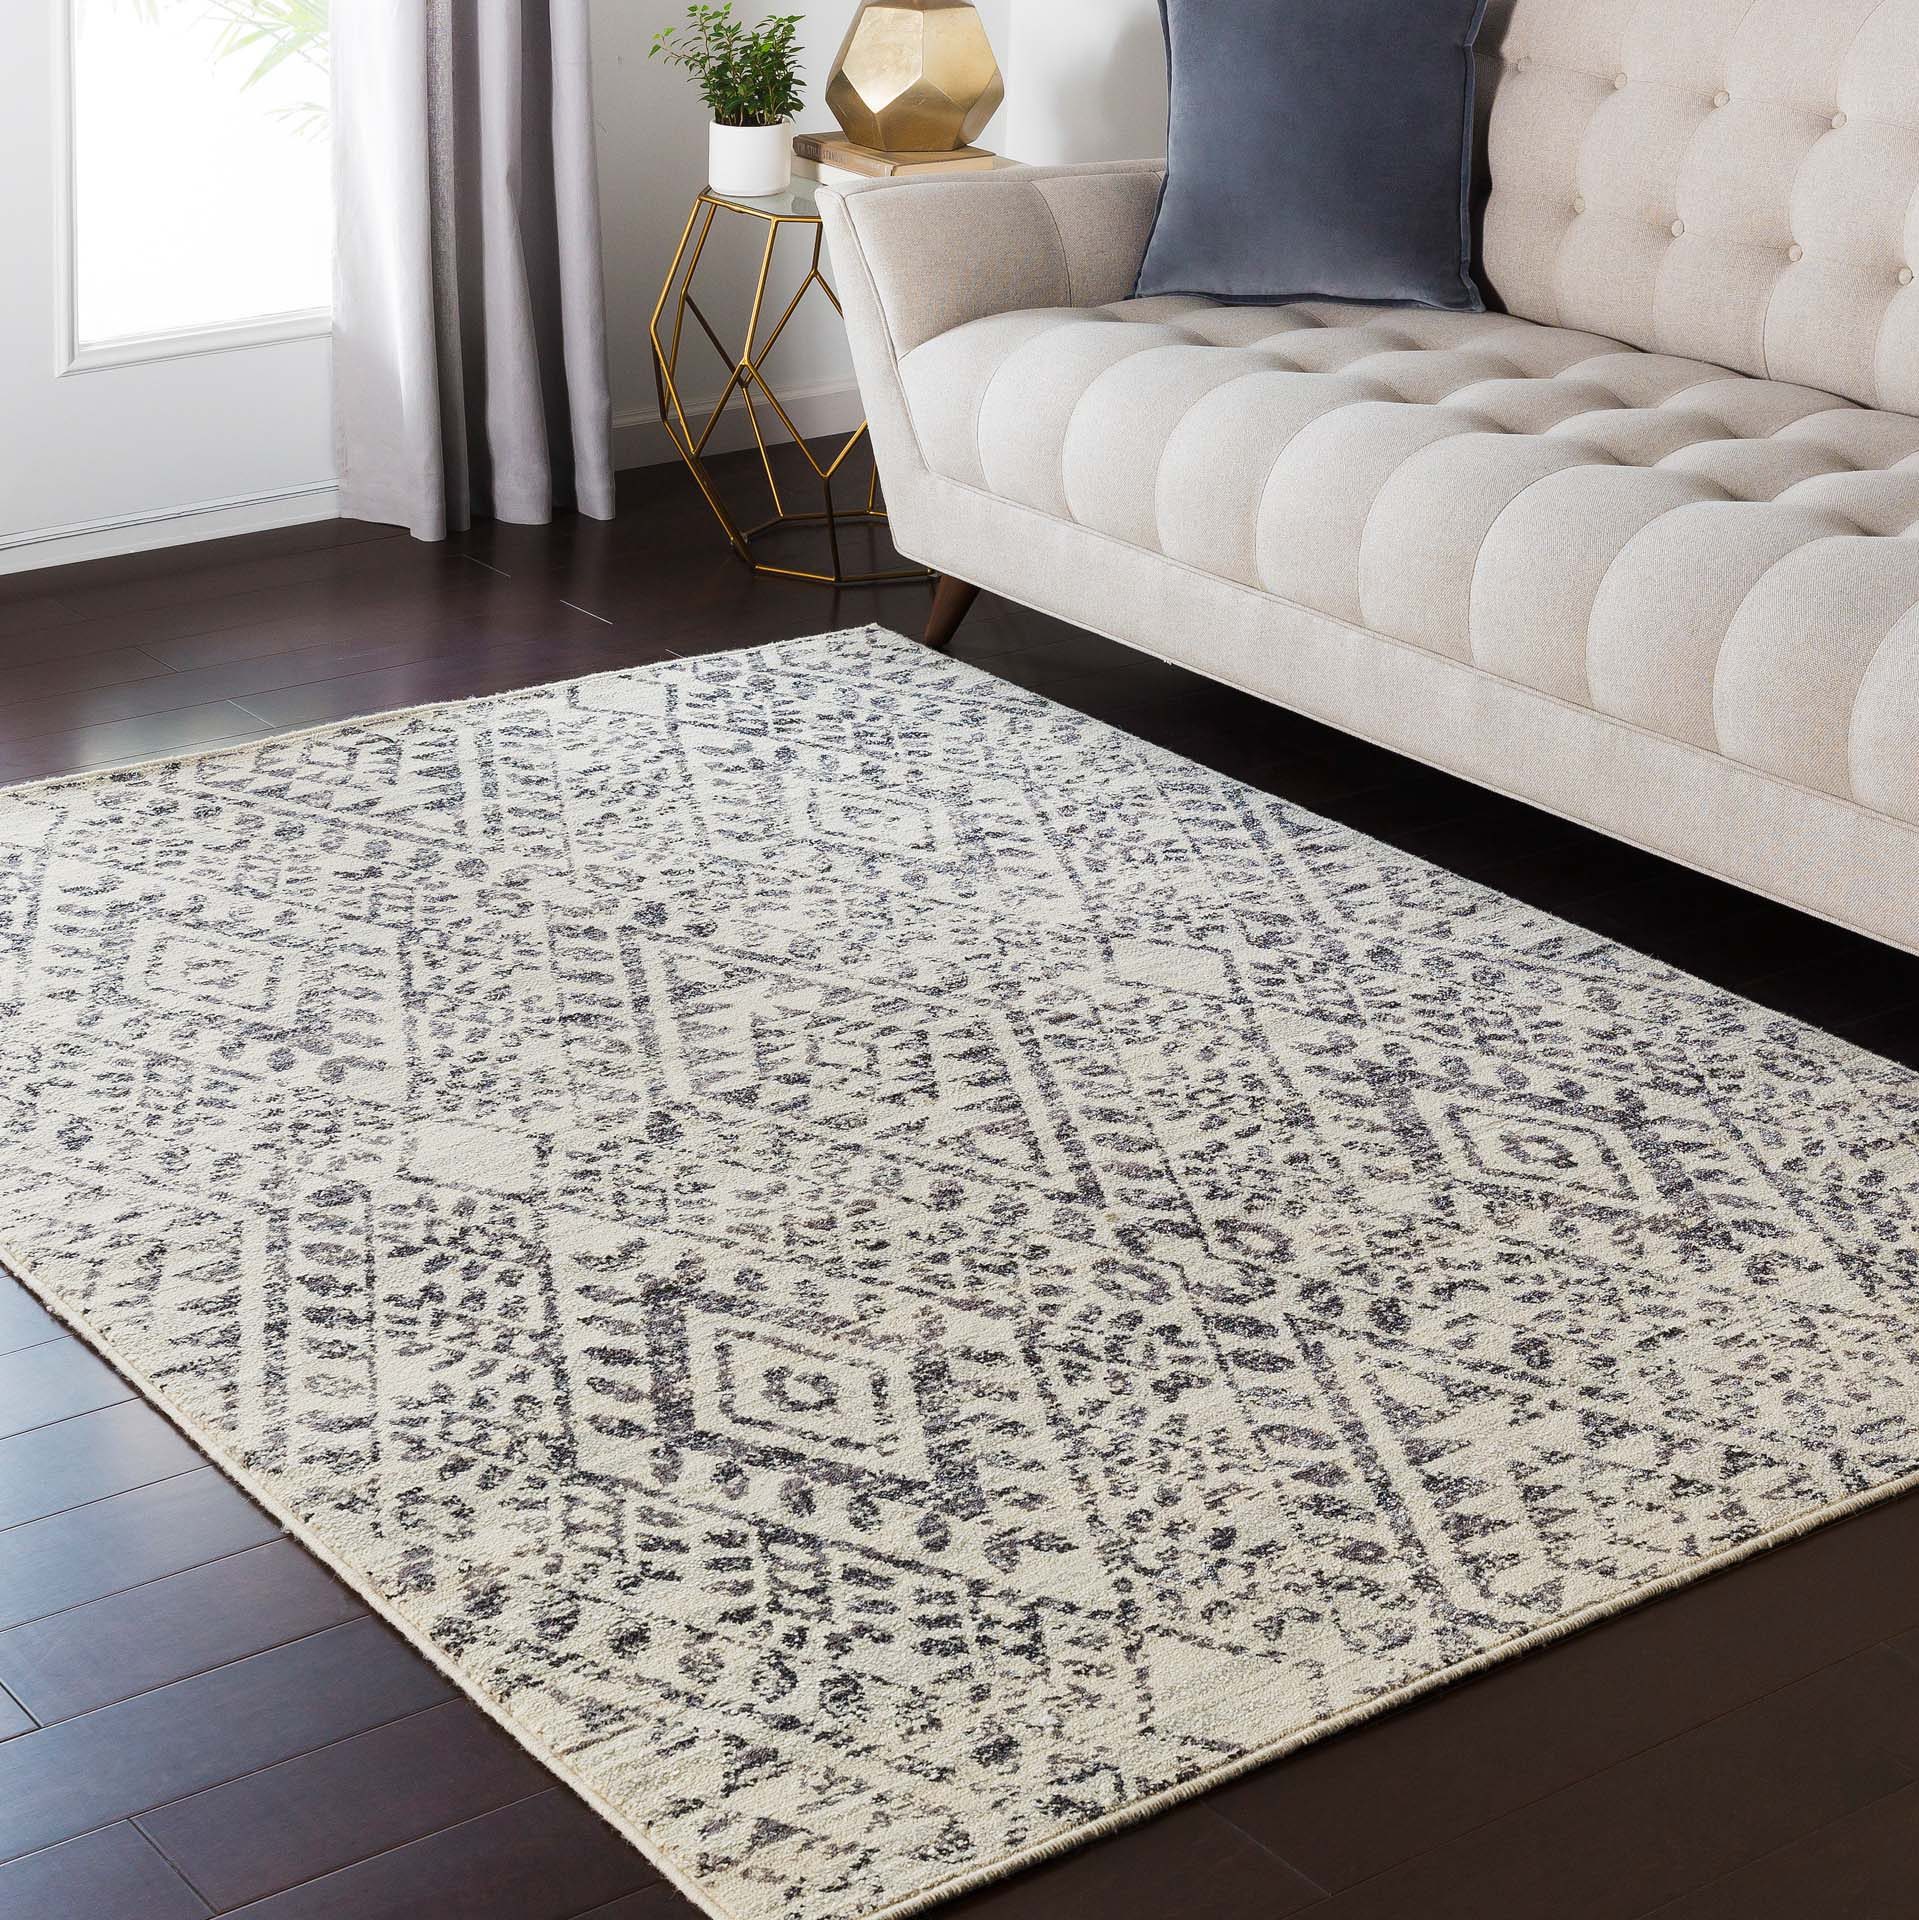 Surya Stretto polyester wool blend rug features an intricate black & cream diamond tribal pattern guaranteed to bring an edgy style to your living room.